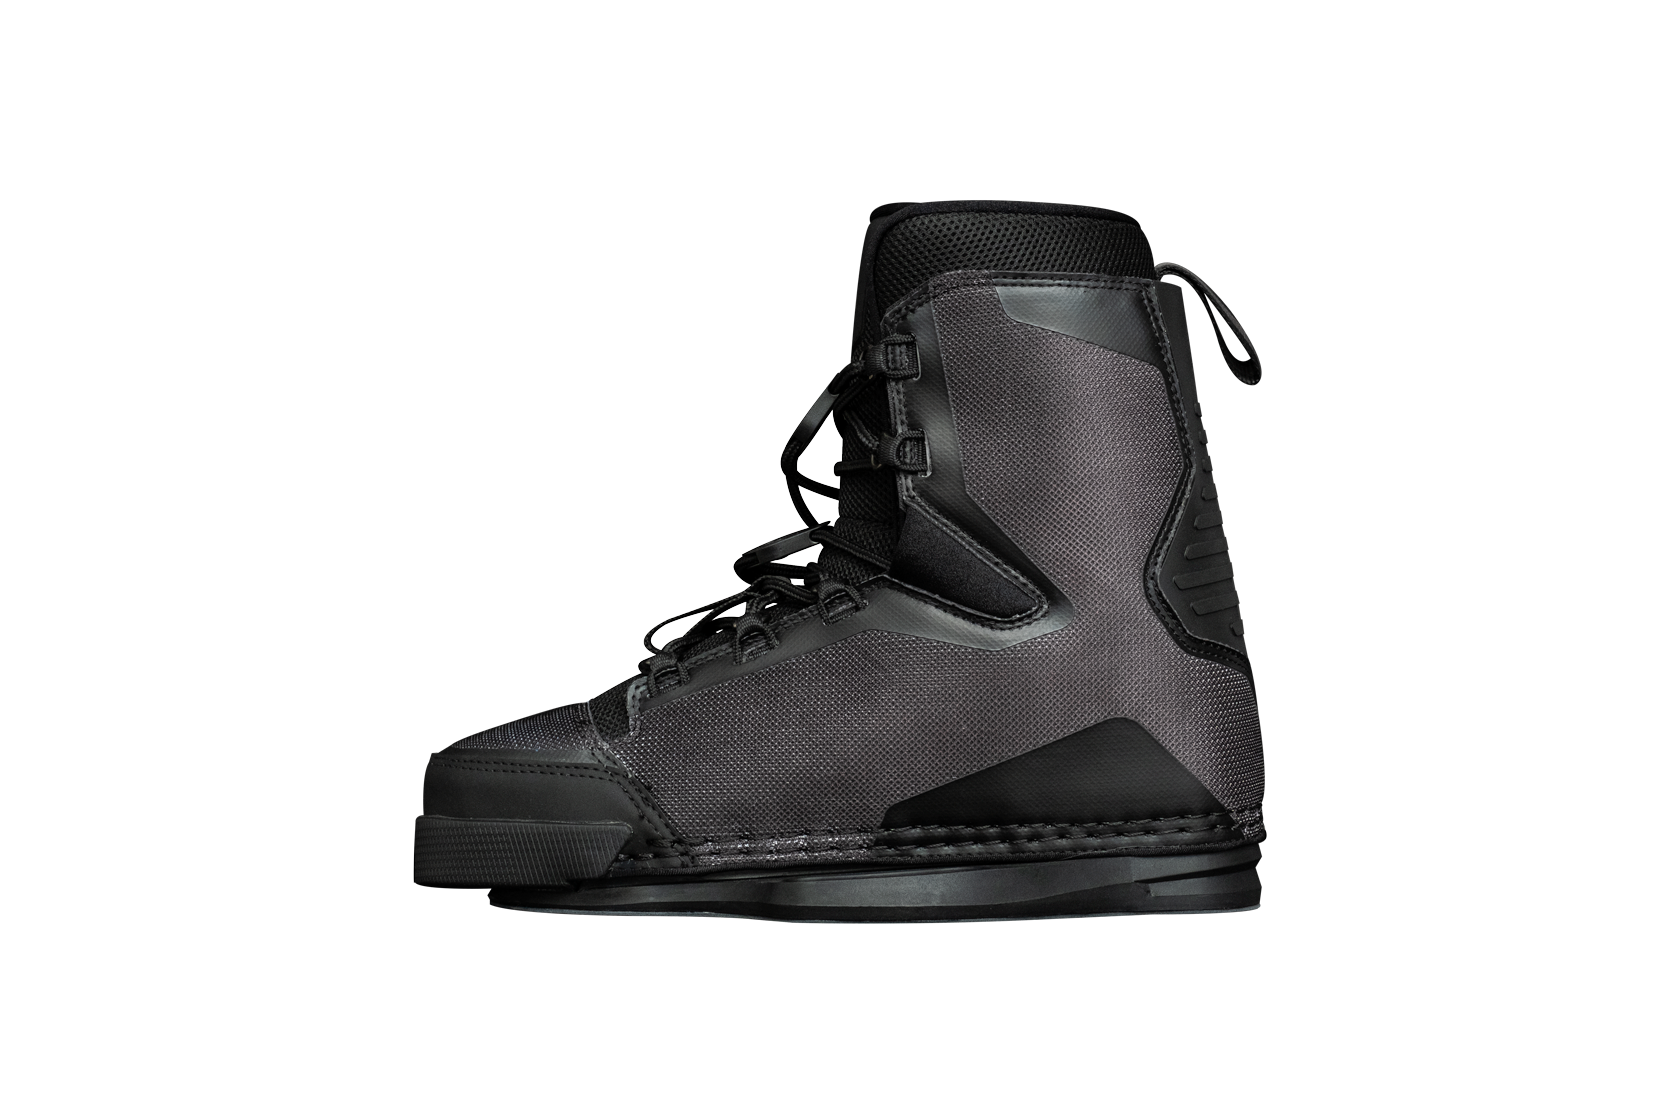 21_AK_Ether Boot_img-03